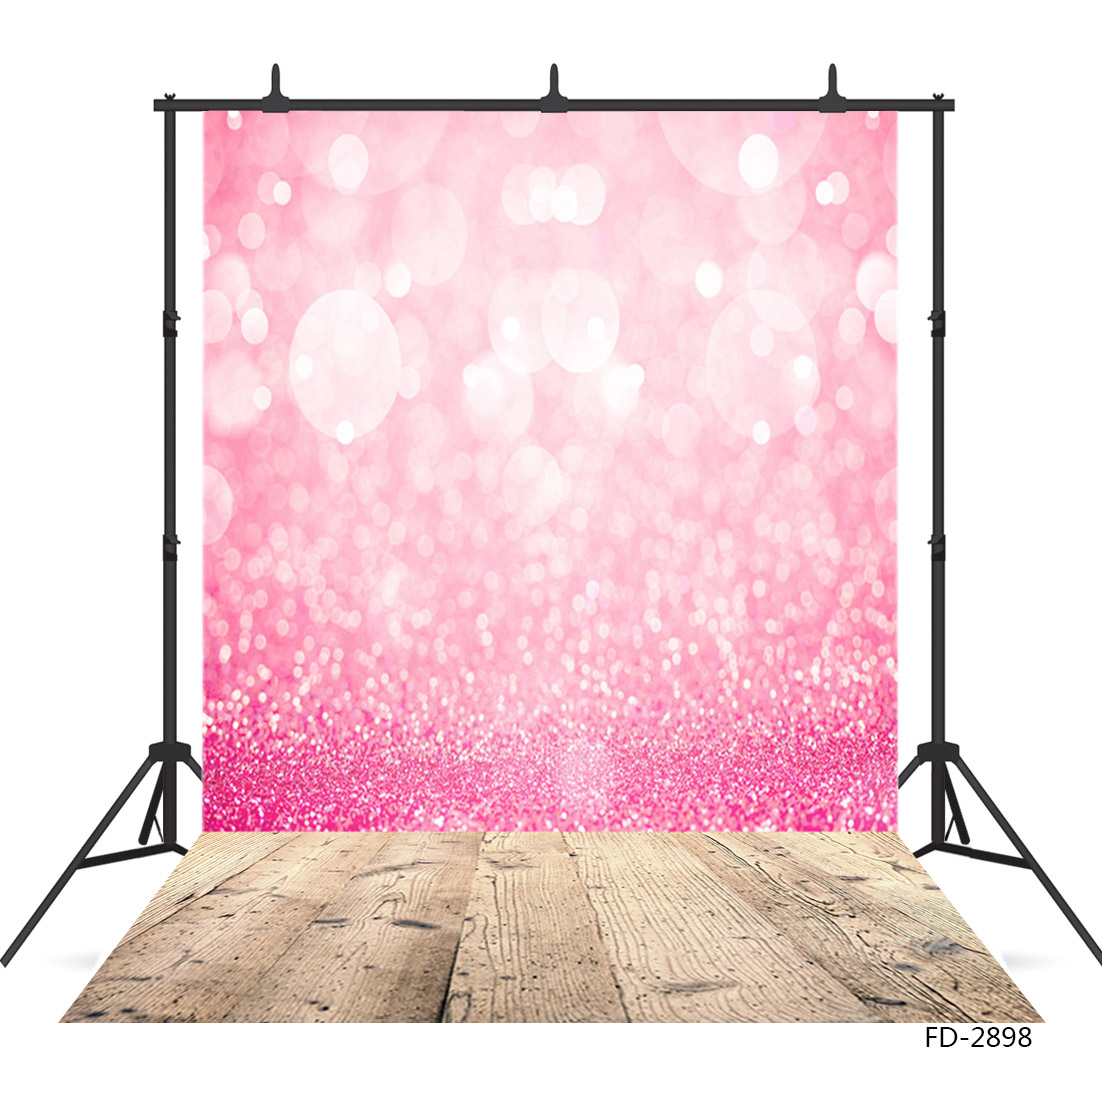 Gold Heart Backdrop Gold Wedding 1m Wide Photo Booth Background